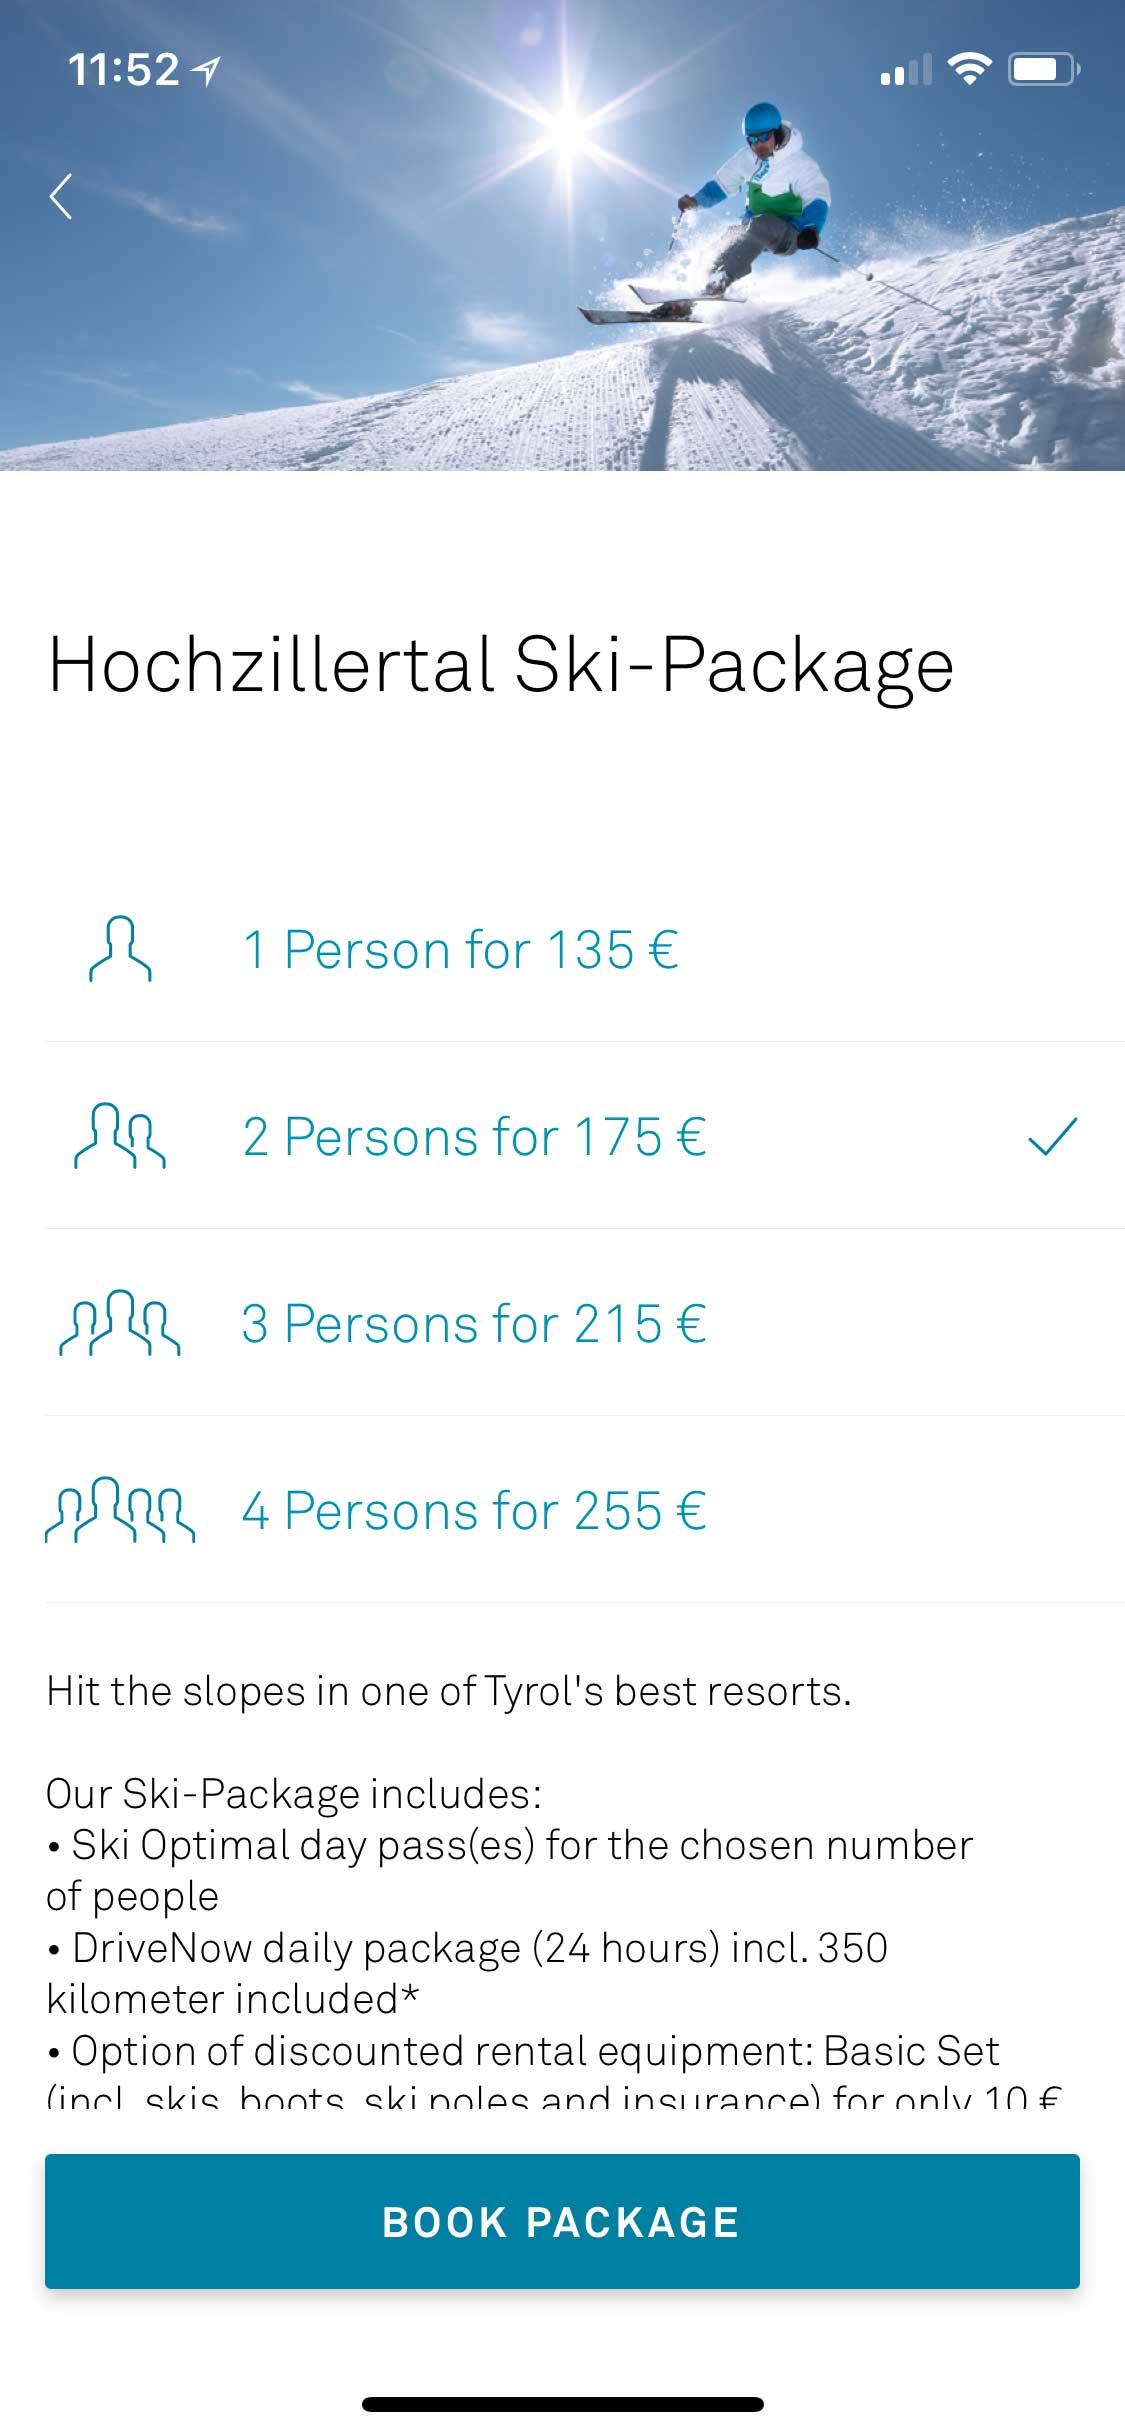 Partner_Offer_Hochzillertal_Muc